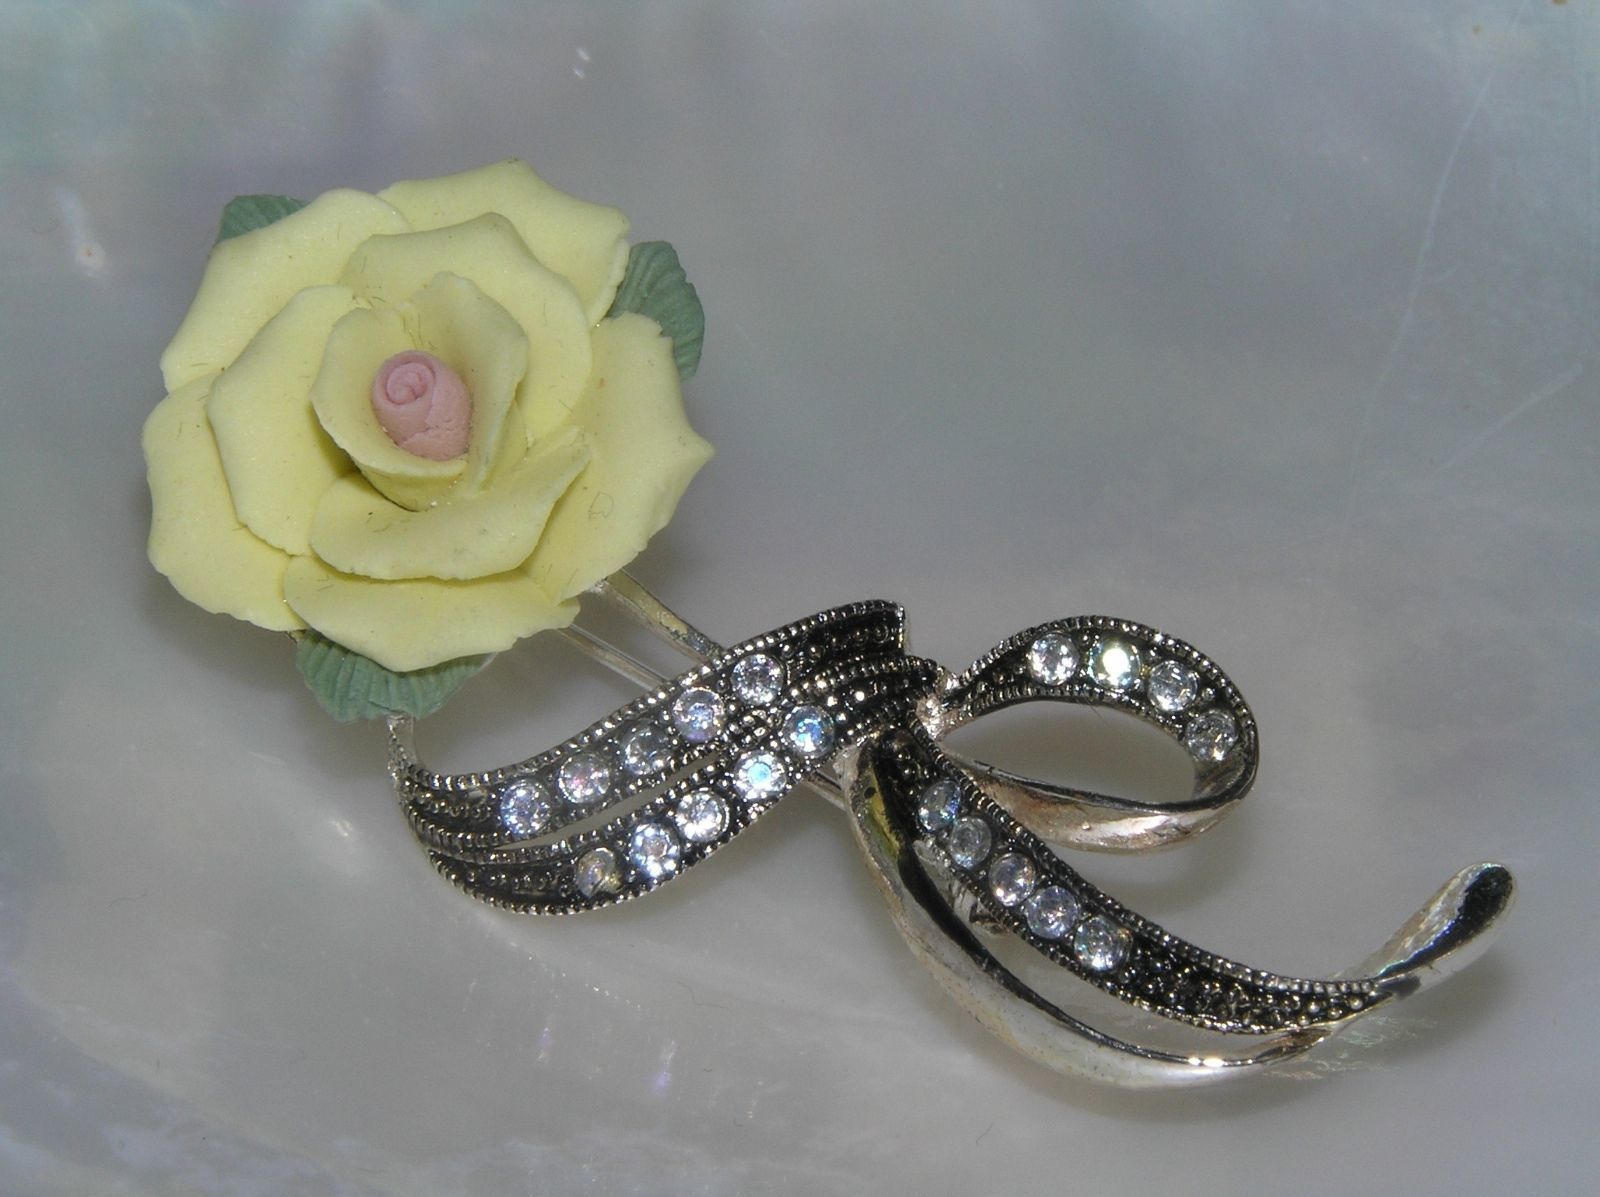 Vintage AVON Pale Yellow Porcelain Rose Flower w Silvertone Ribbon Encrusted